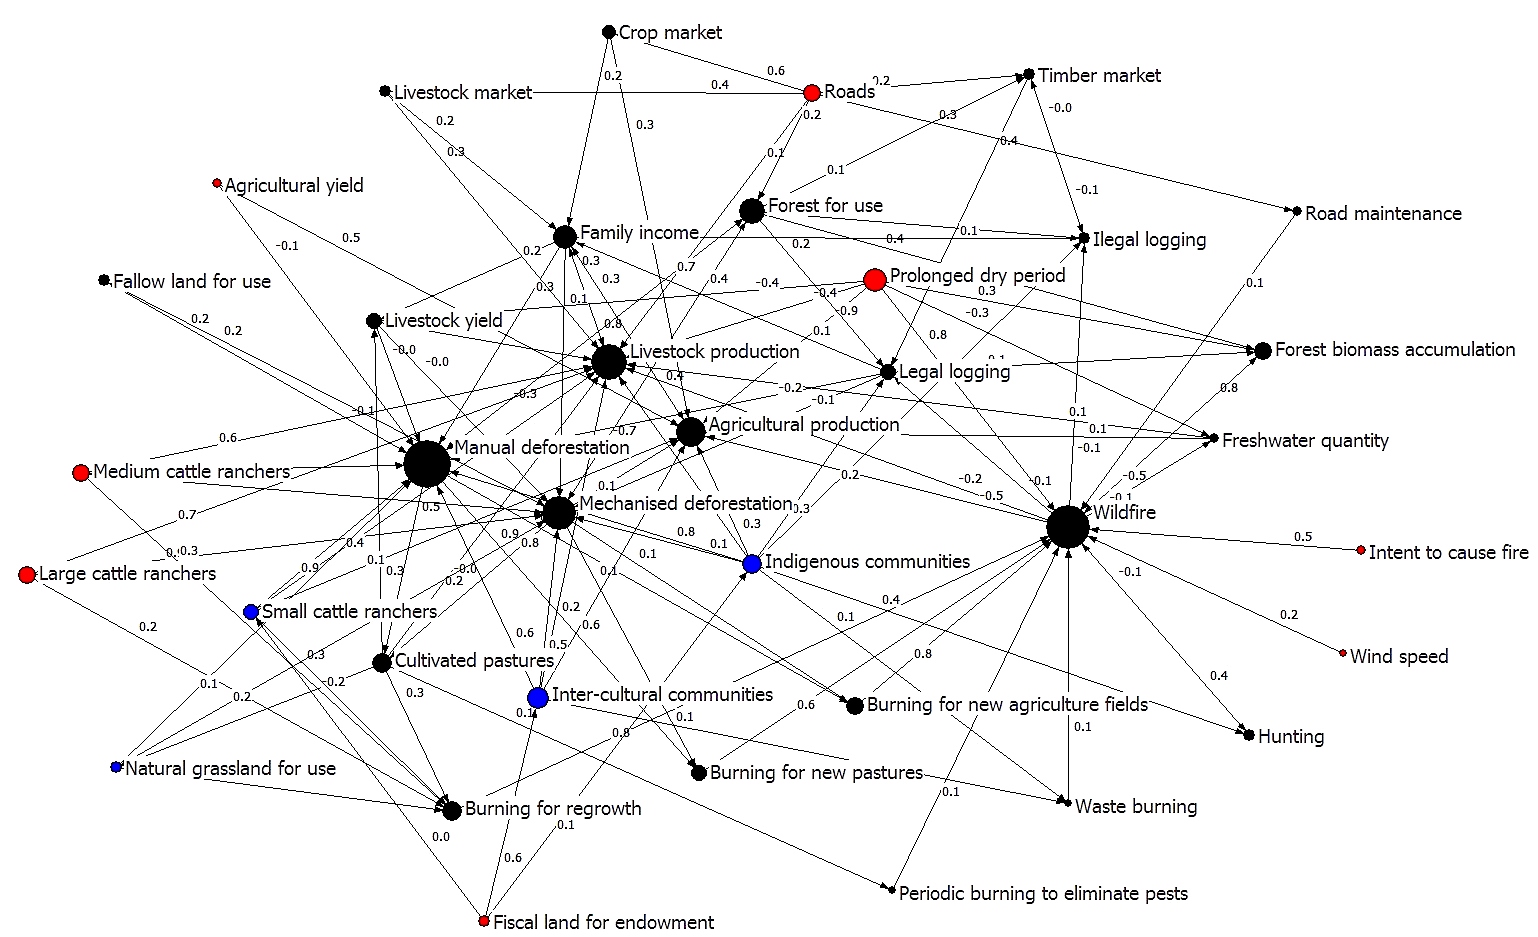 fig network visualization of the augmented fcm node size fig 3 network visualization of the augmented fuzzy cognitive map node size represents degree centrality where variables higher degree have larger